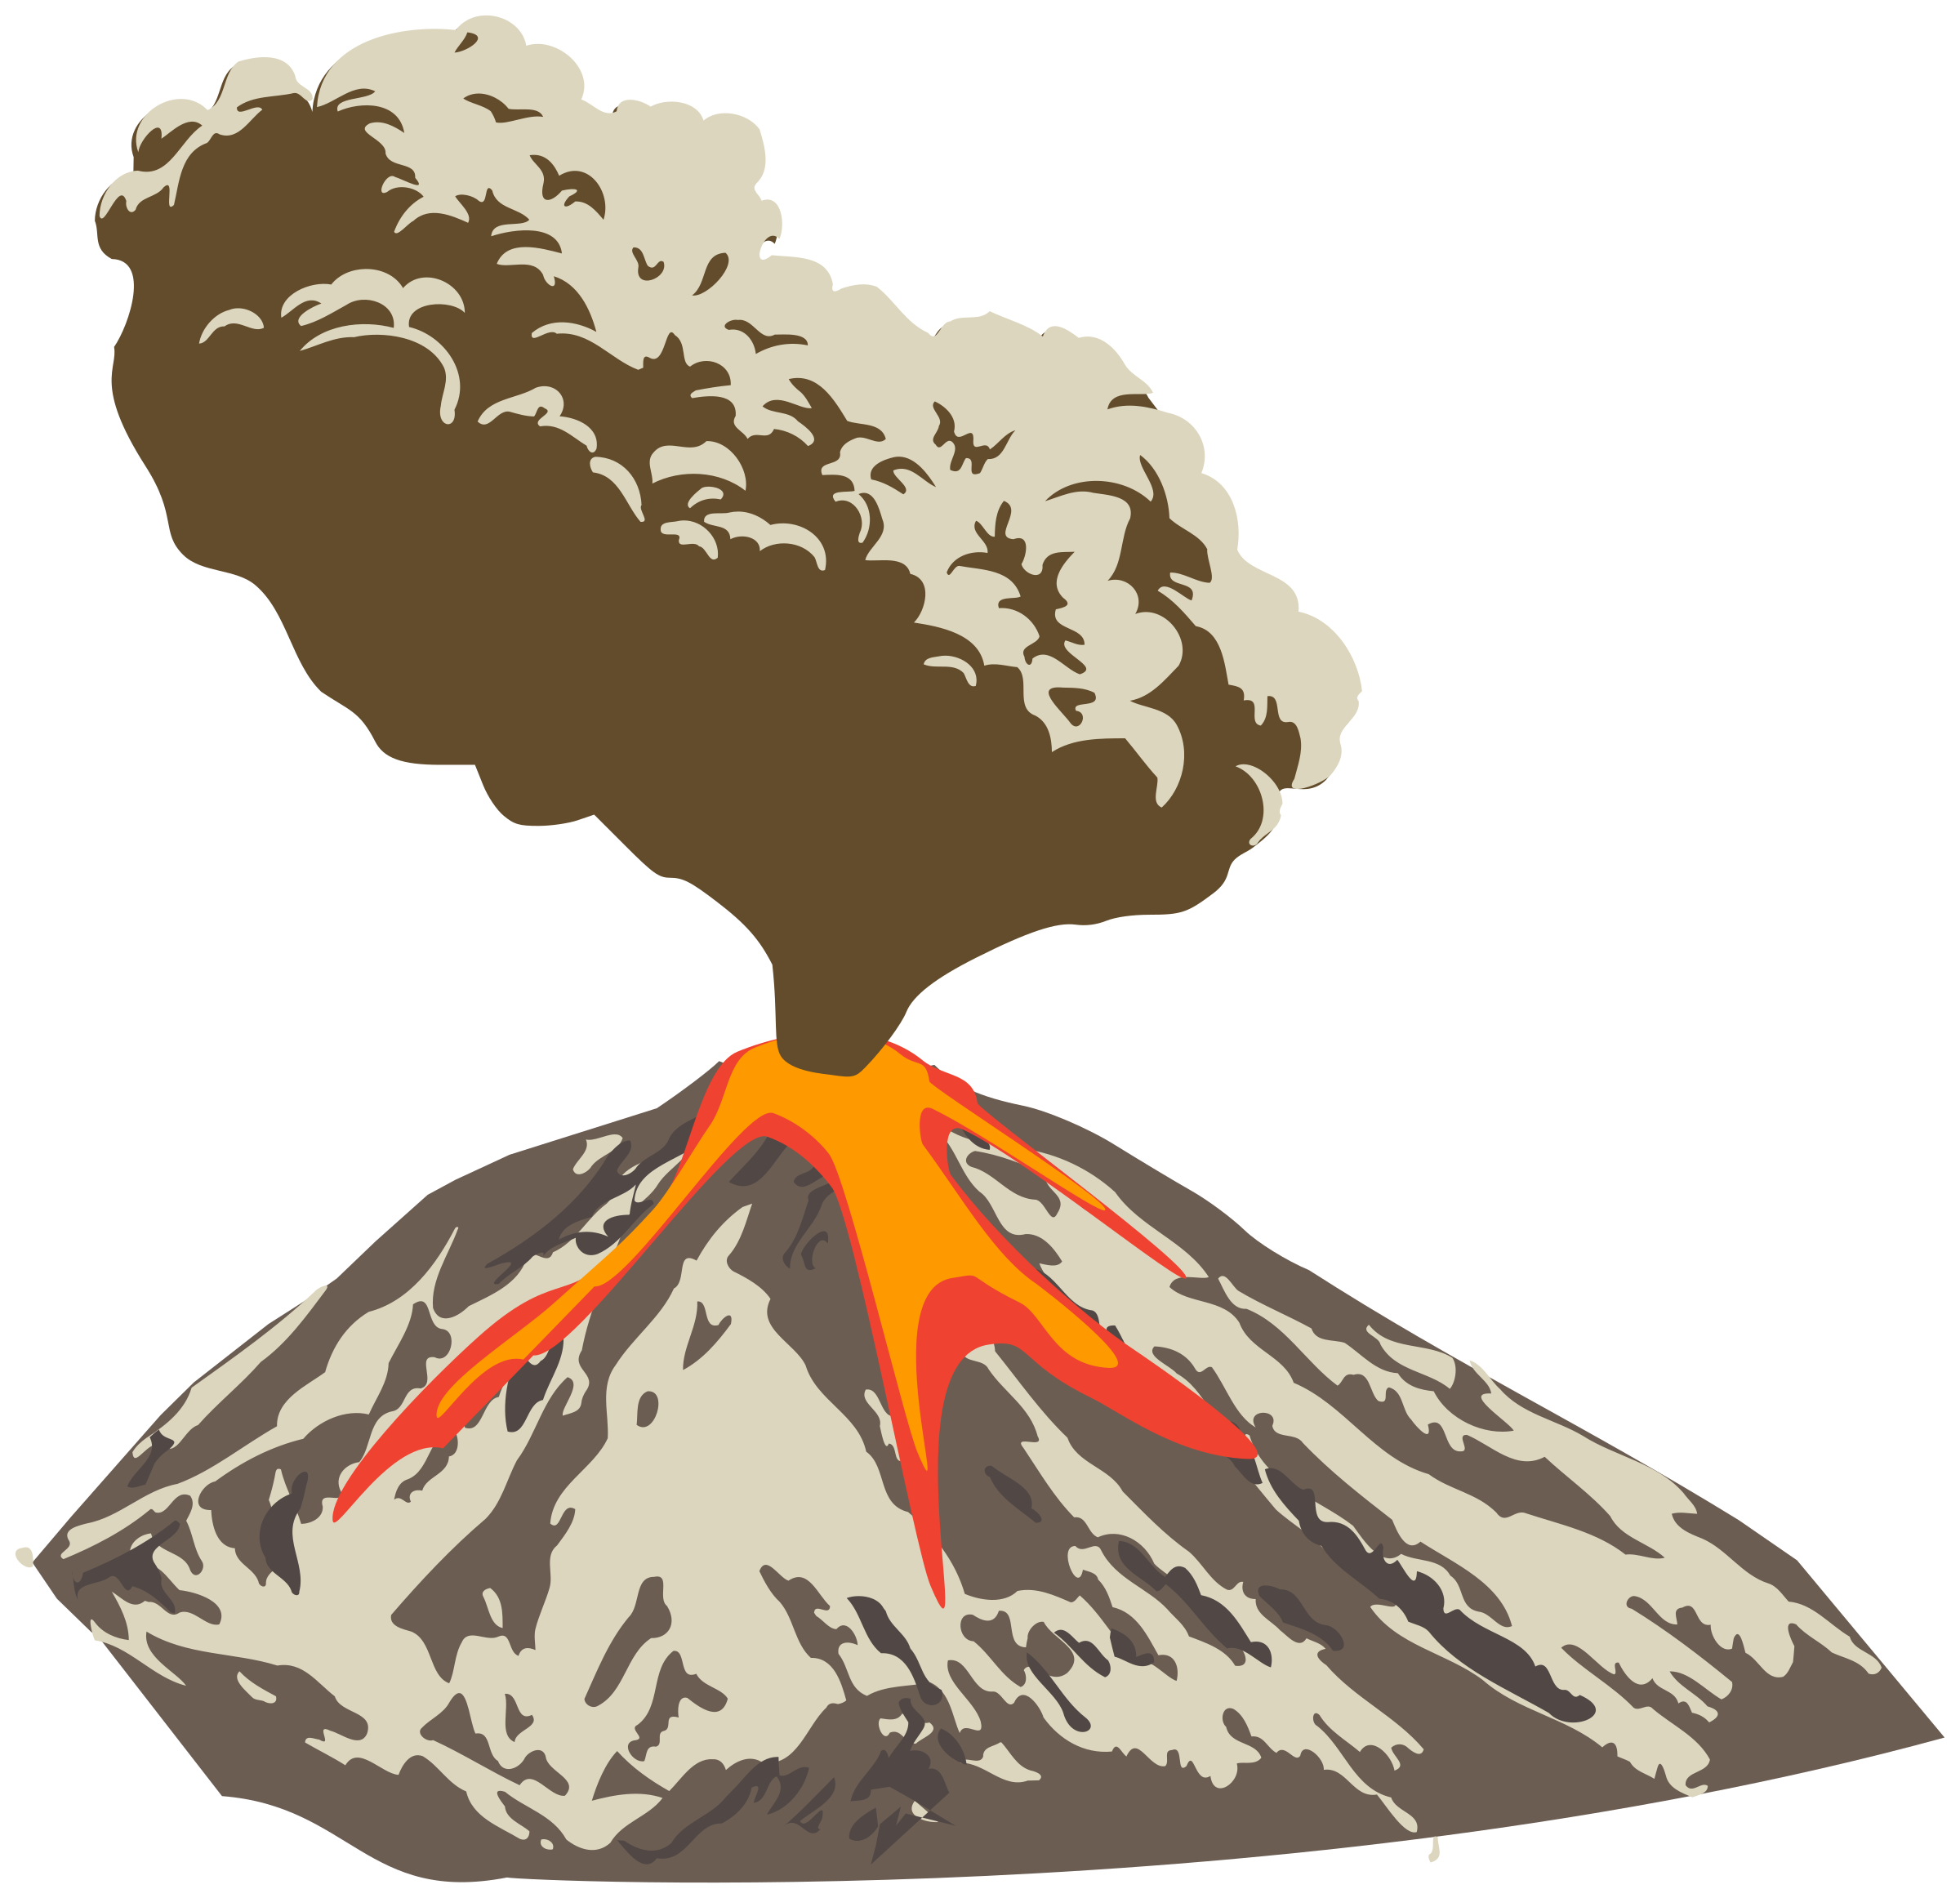 Erupting volcano with ash plume and lava flow by Juhele